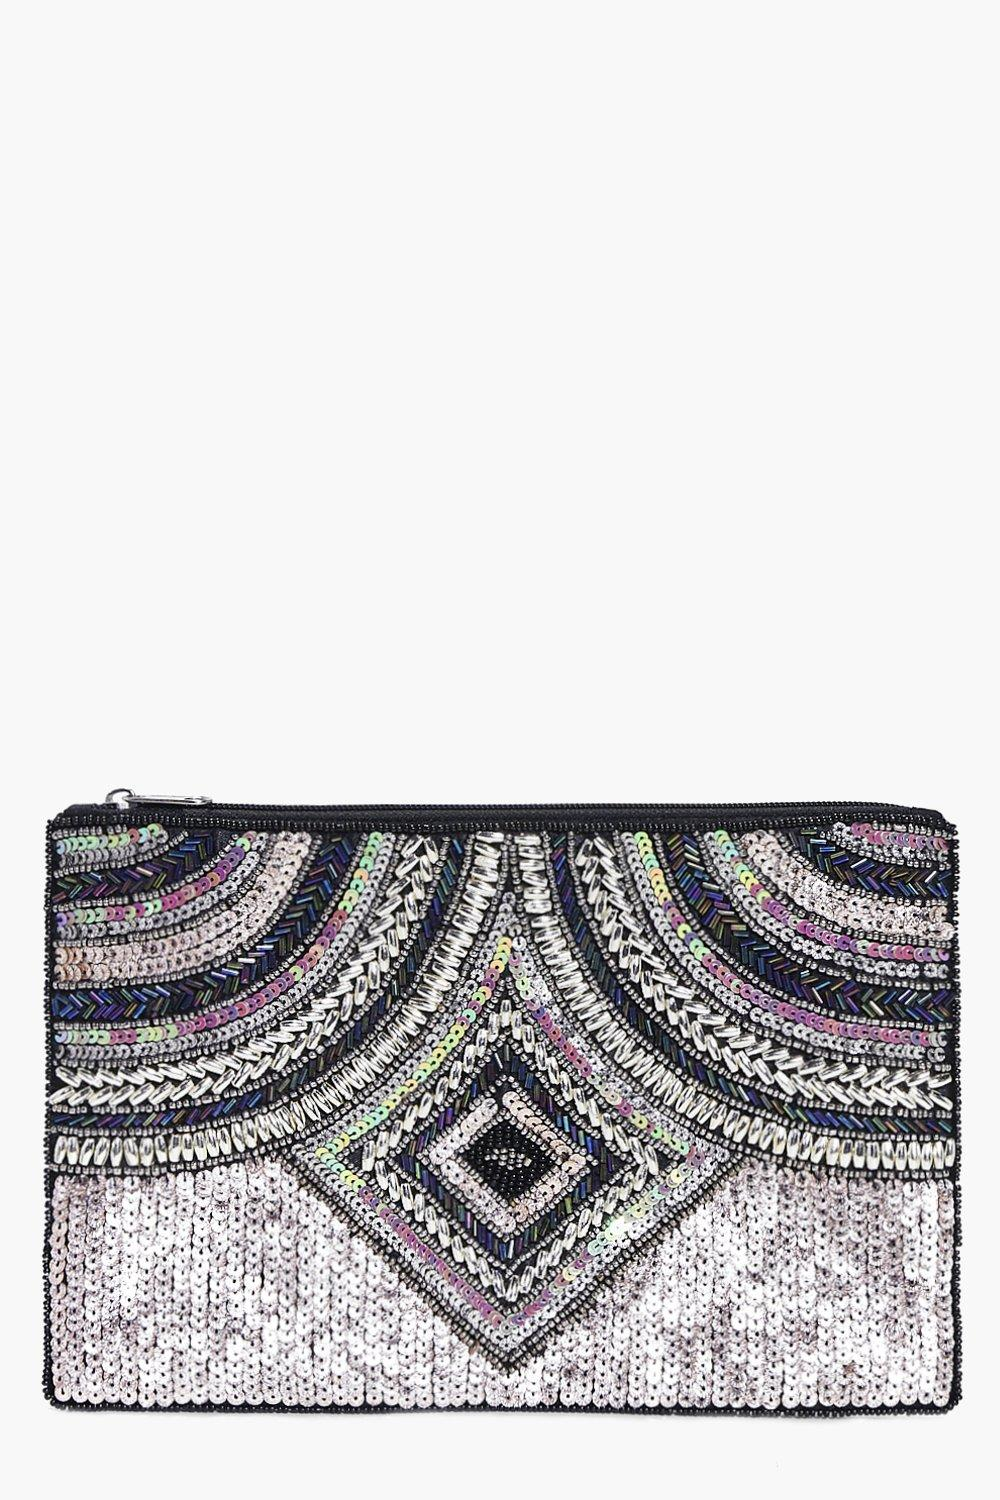 Maria Multi Bead & Sequin Clutch Bag